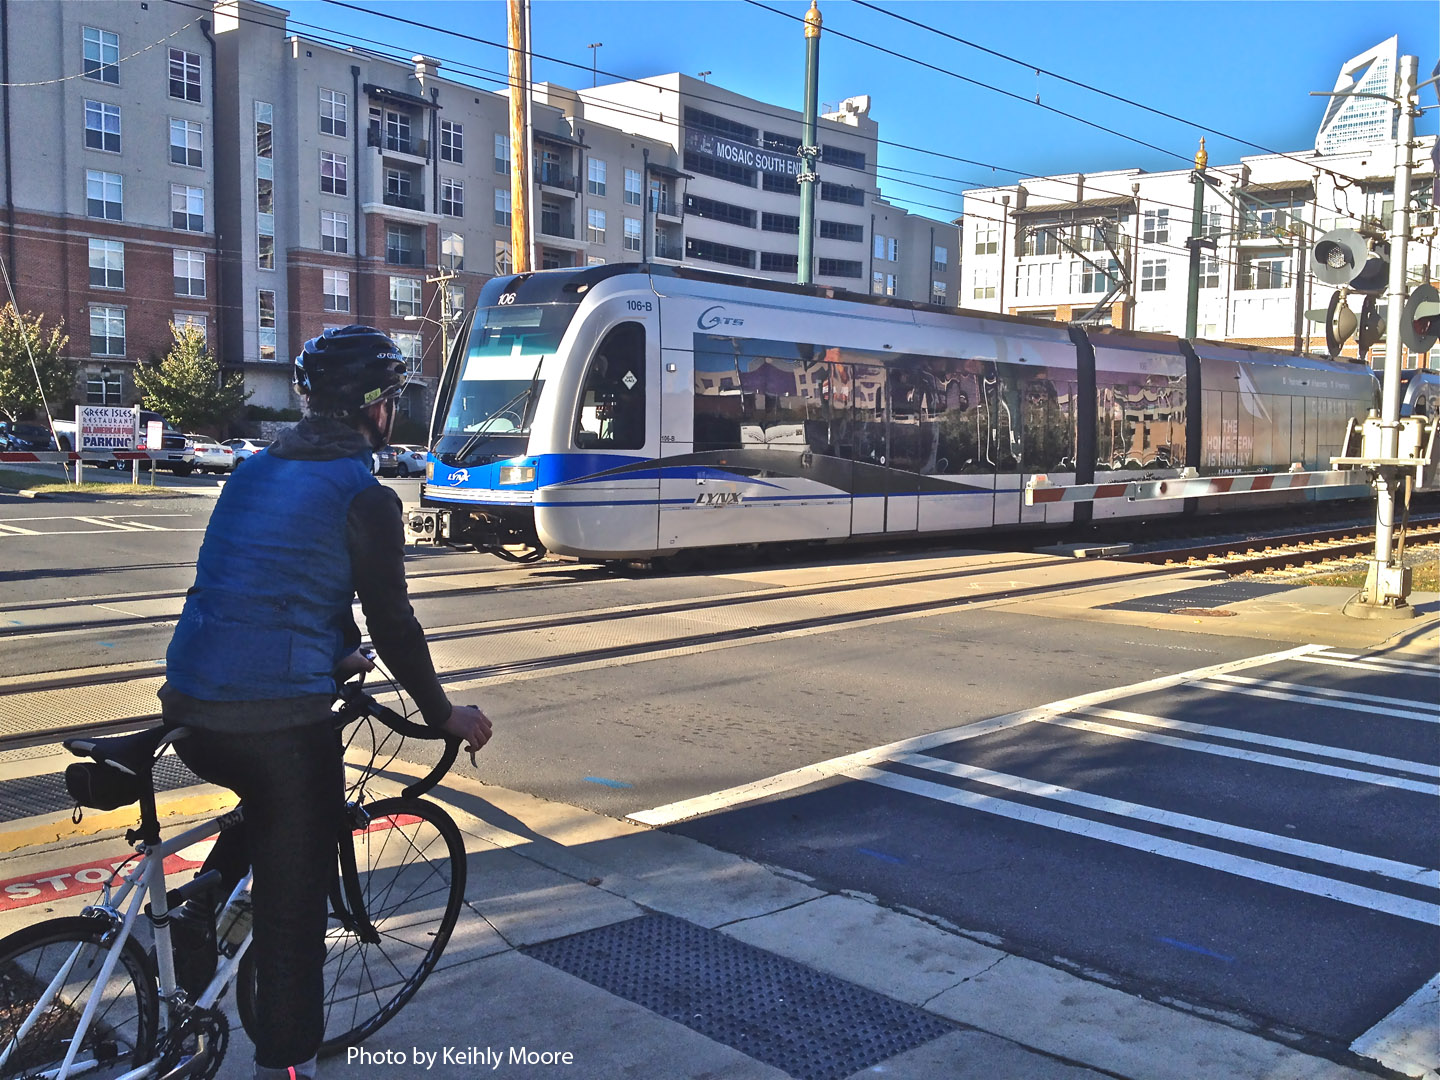 Lightrail_bike-CommutePhoto_KM.jpg